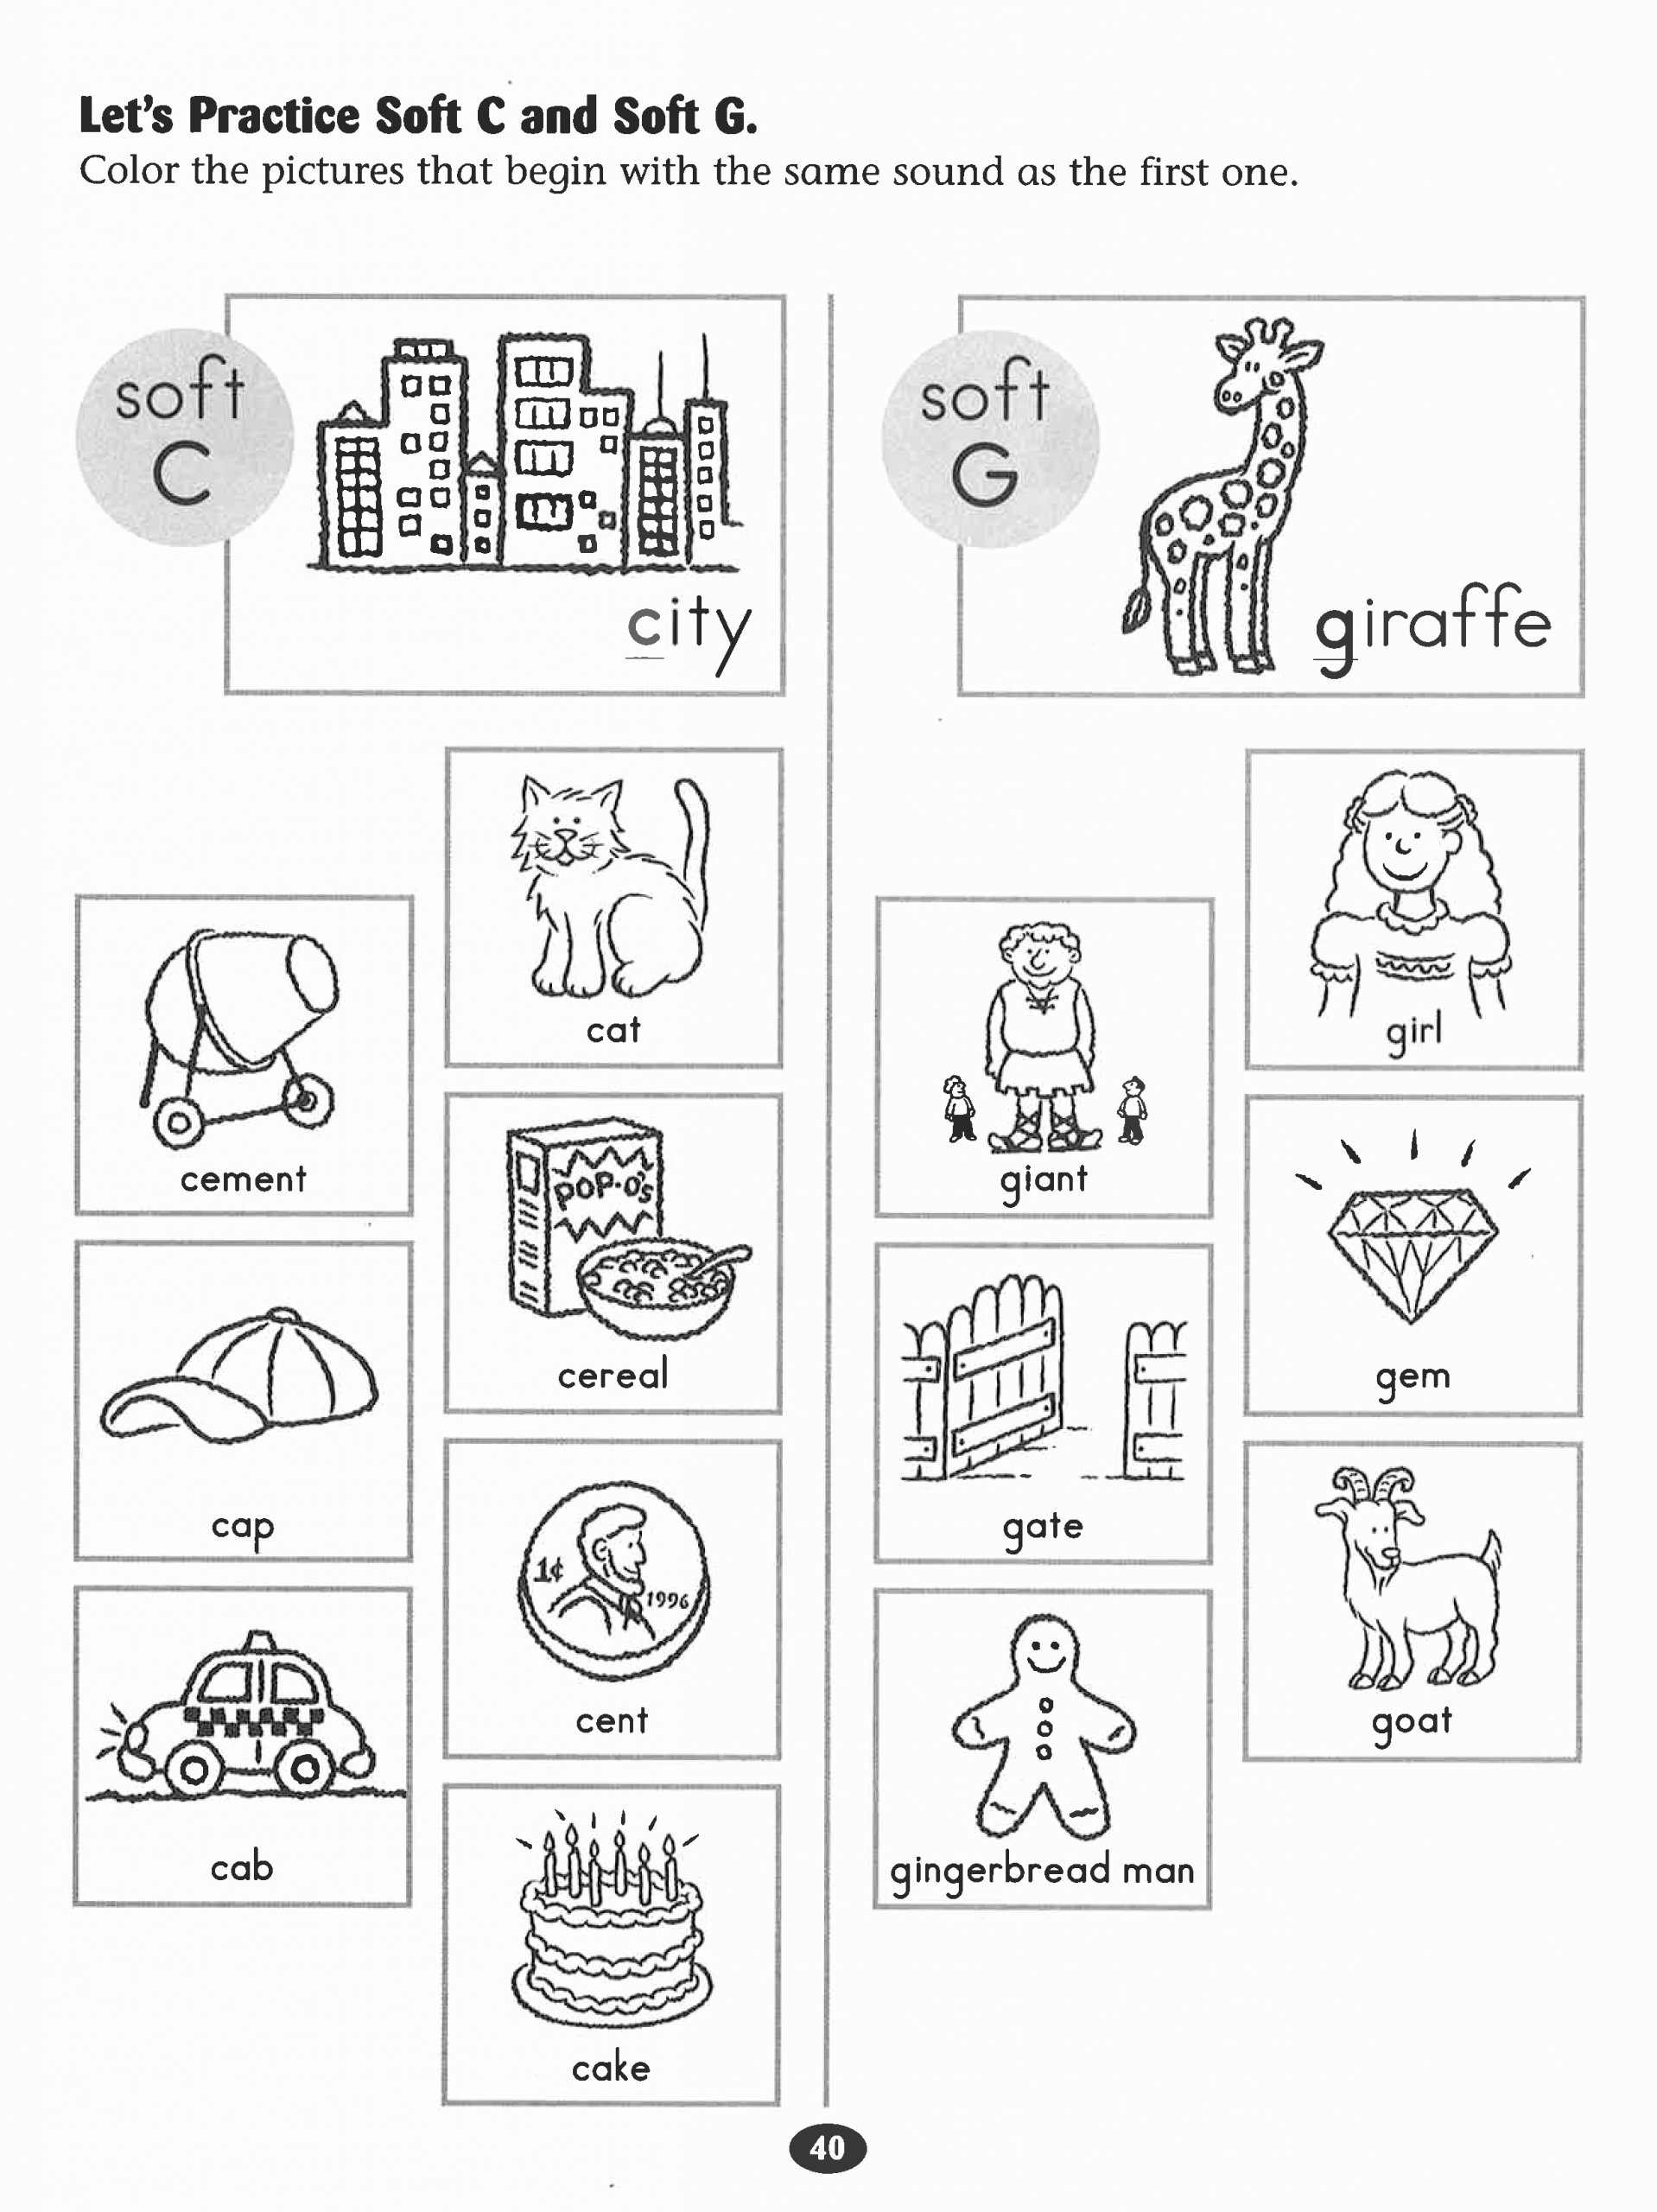 Soft G Worksheet Luxury Let S Practice soft C and soft G Worksheet with Images